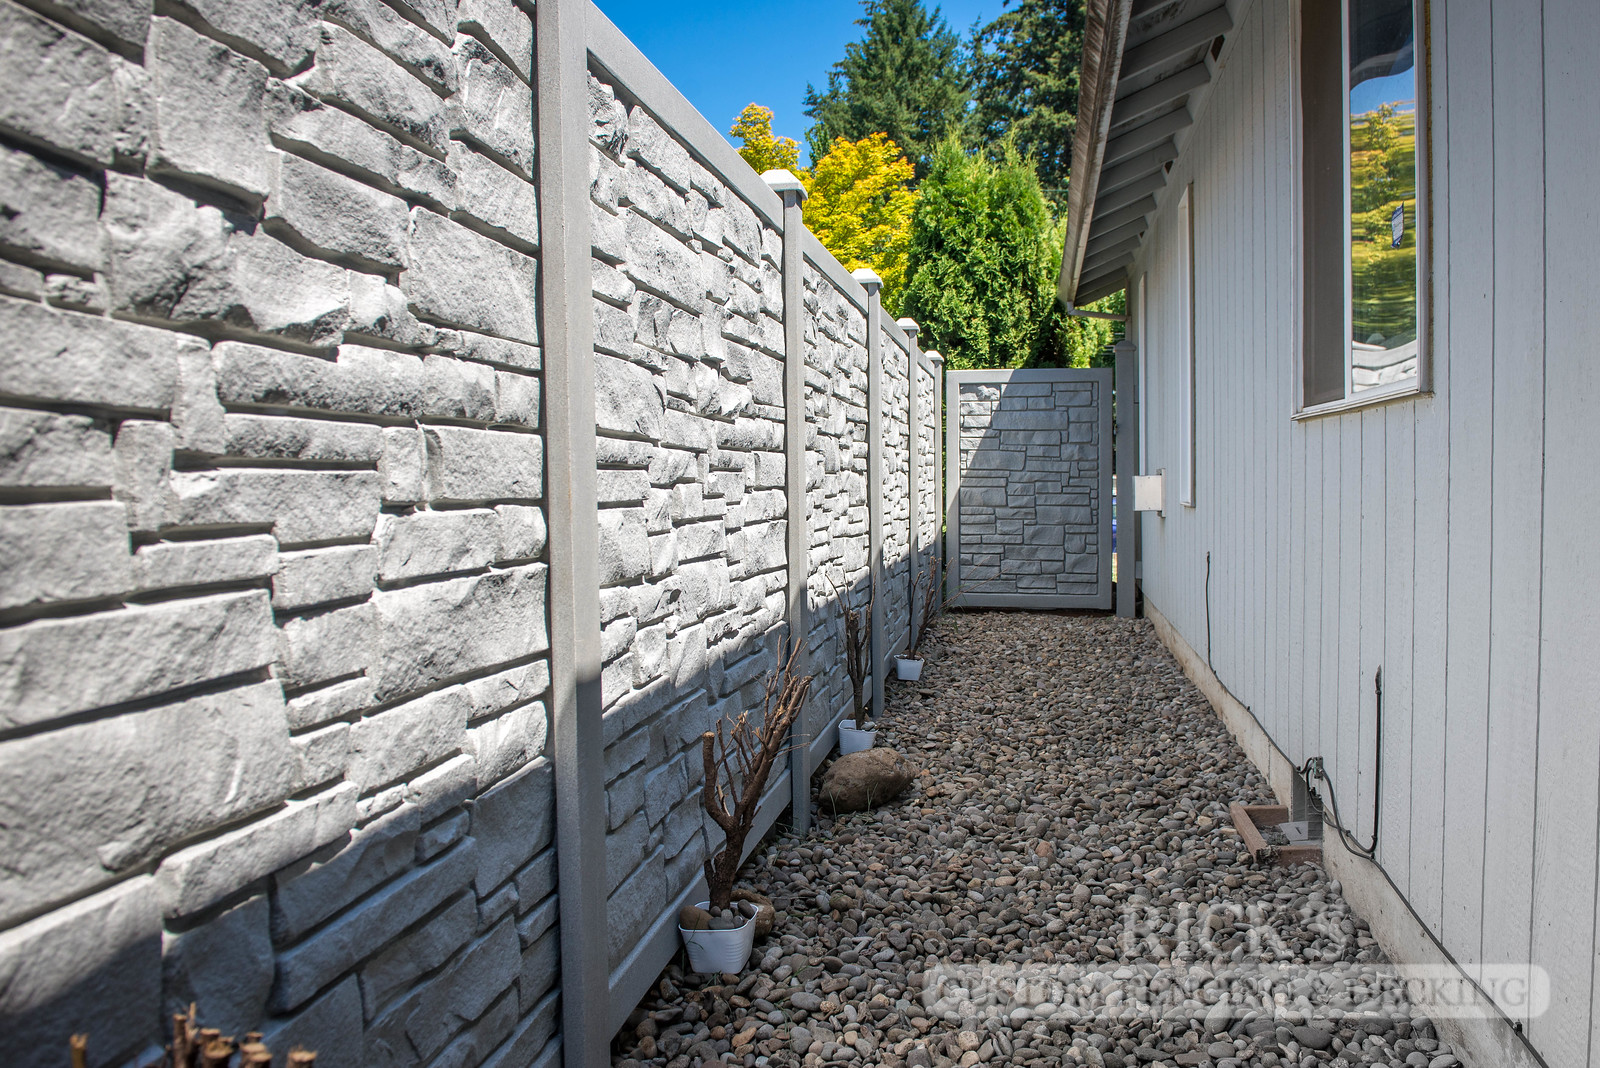 4005 - Allegheny Simulated Rock Fencing